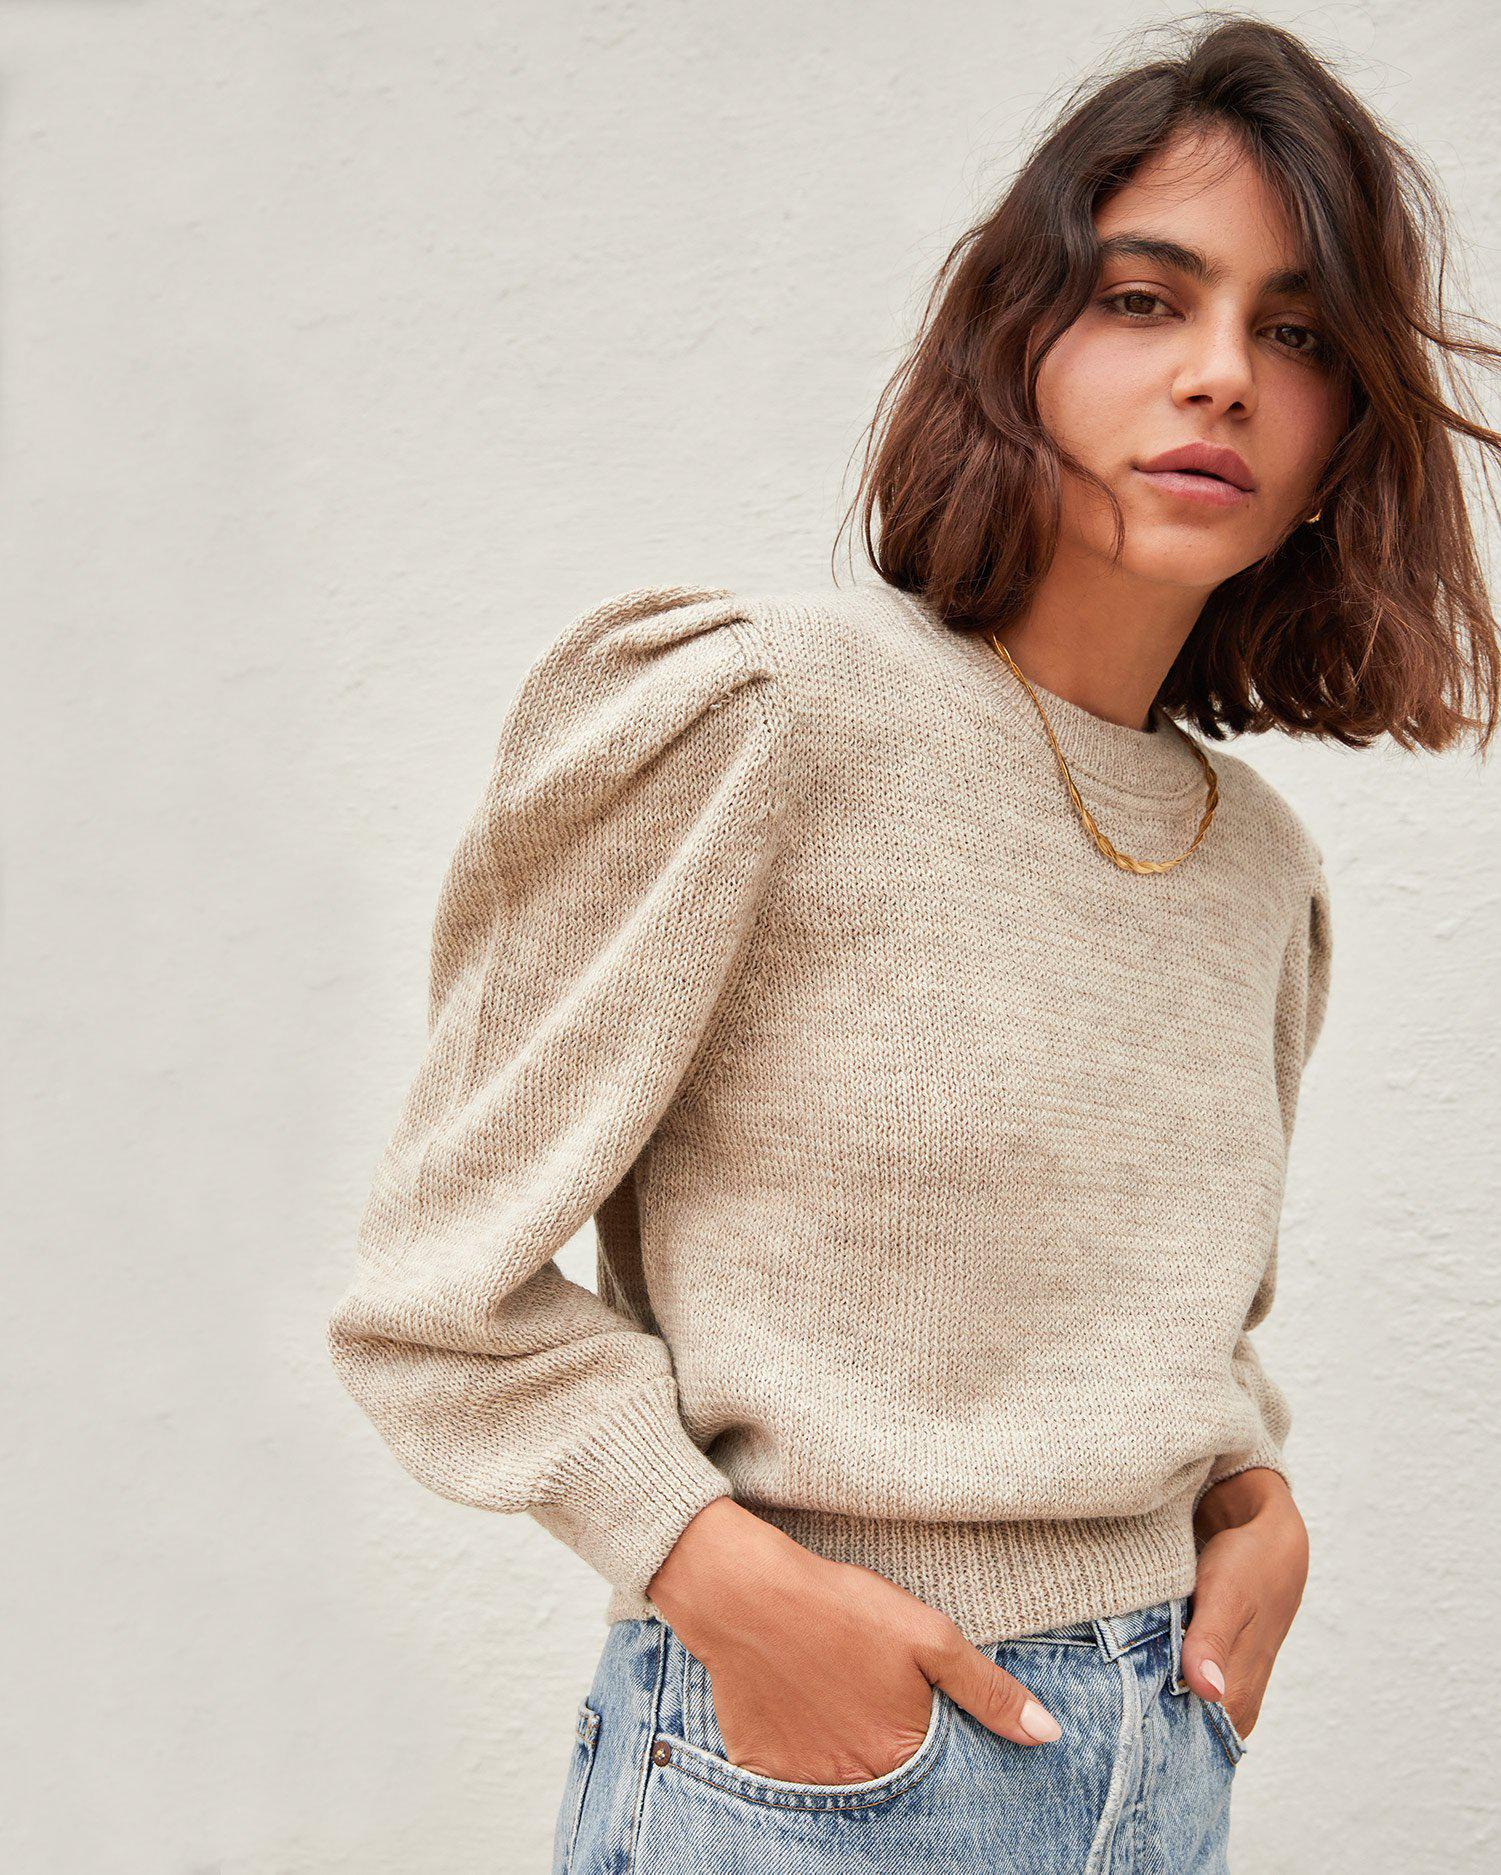 Knits for Good Oatmeal Sweater 1